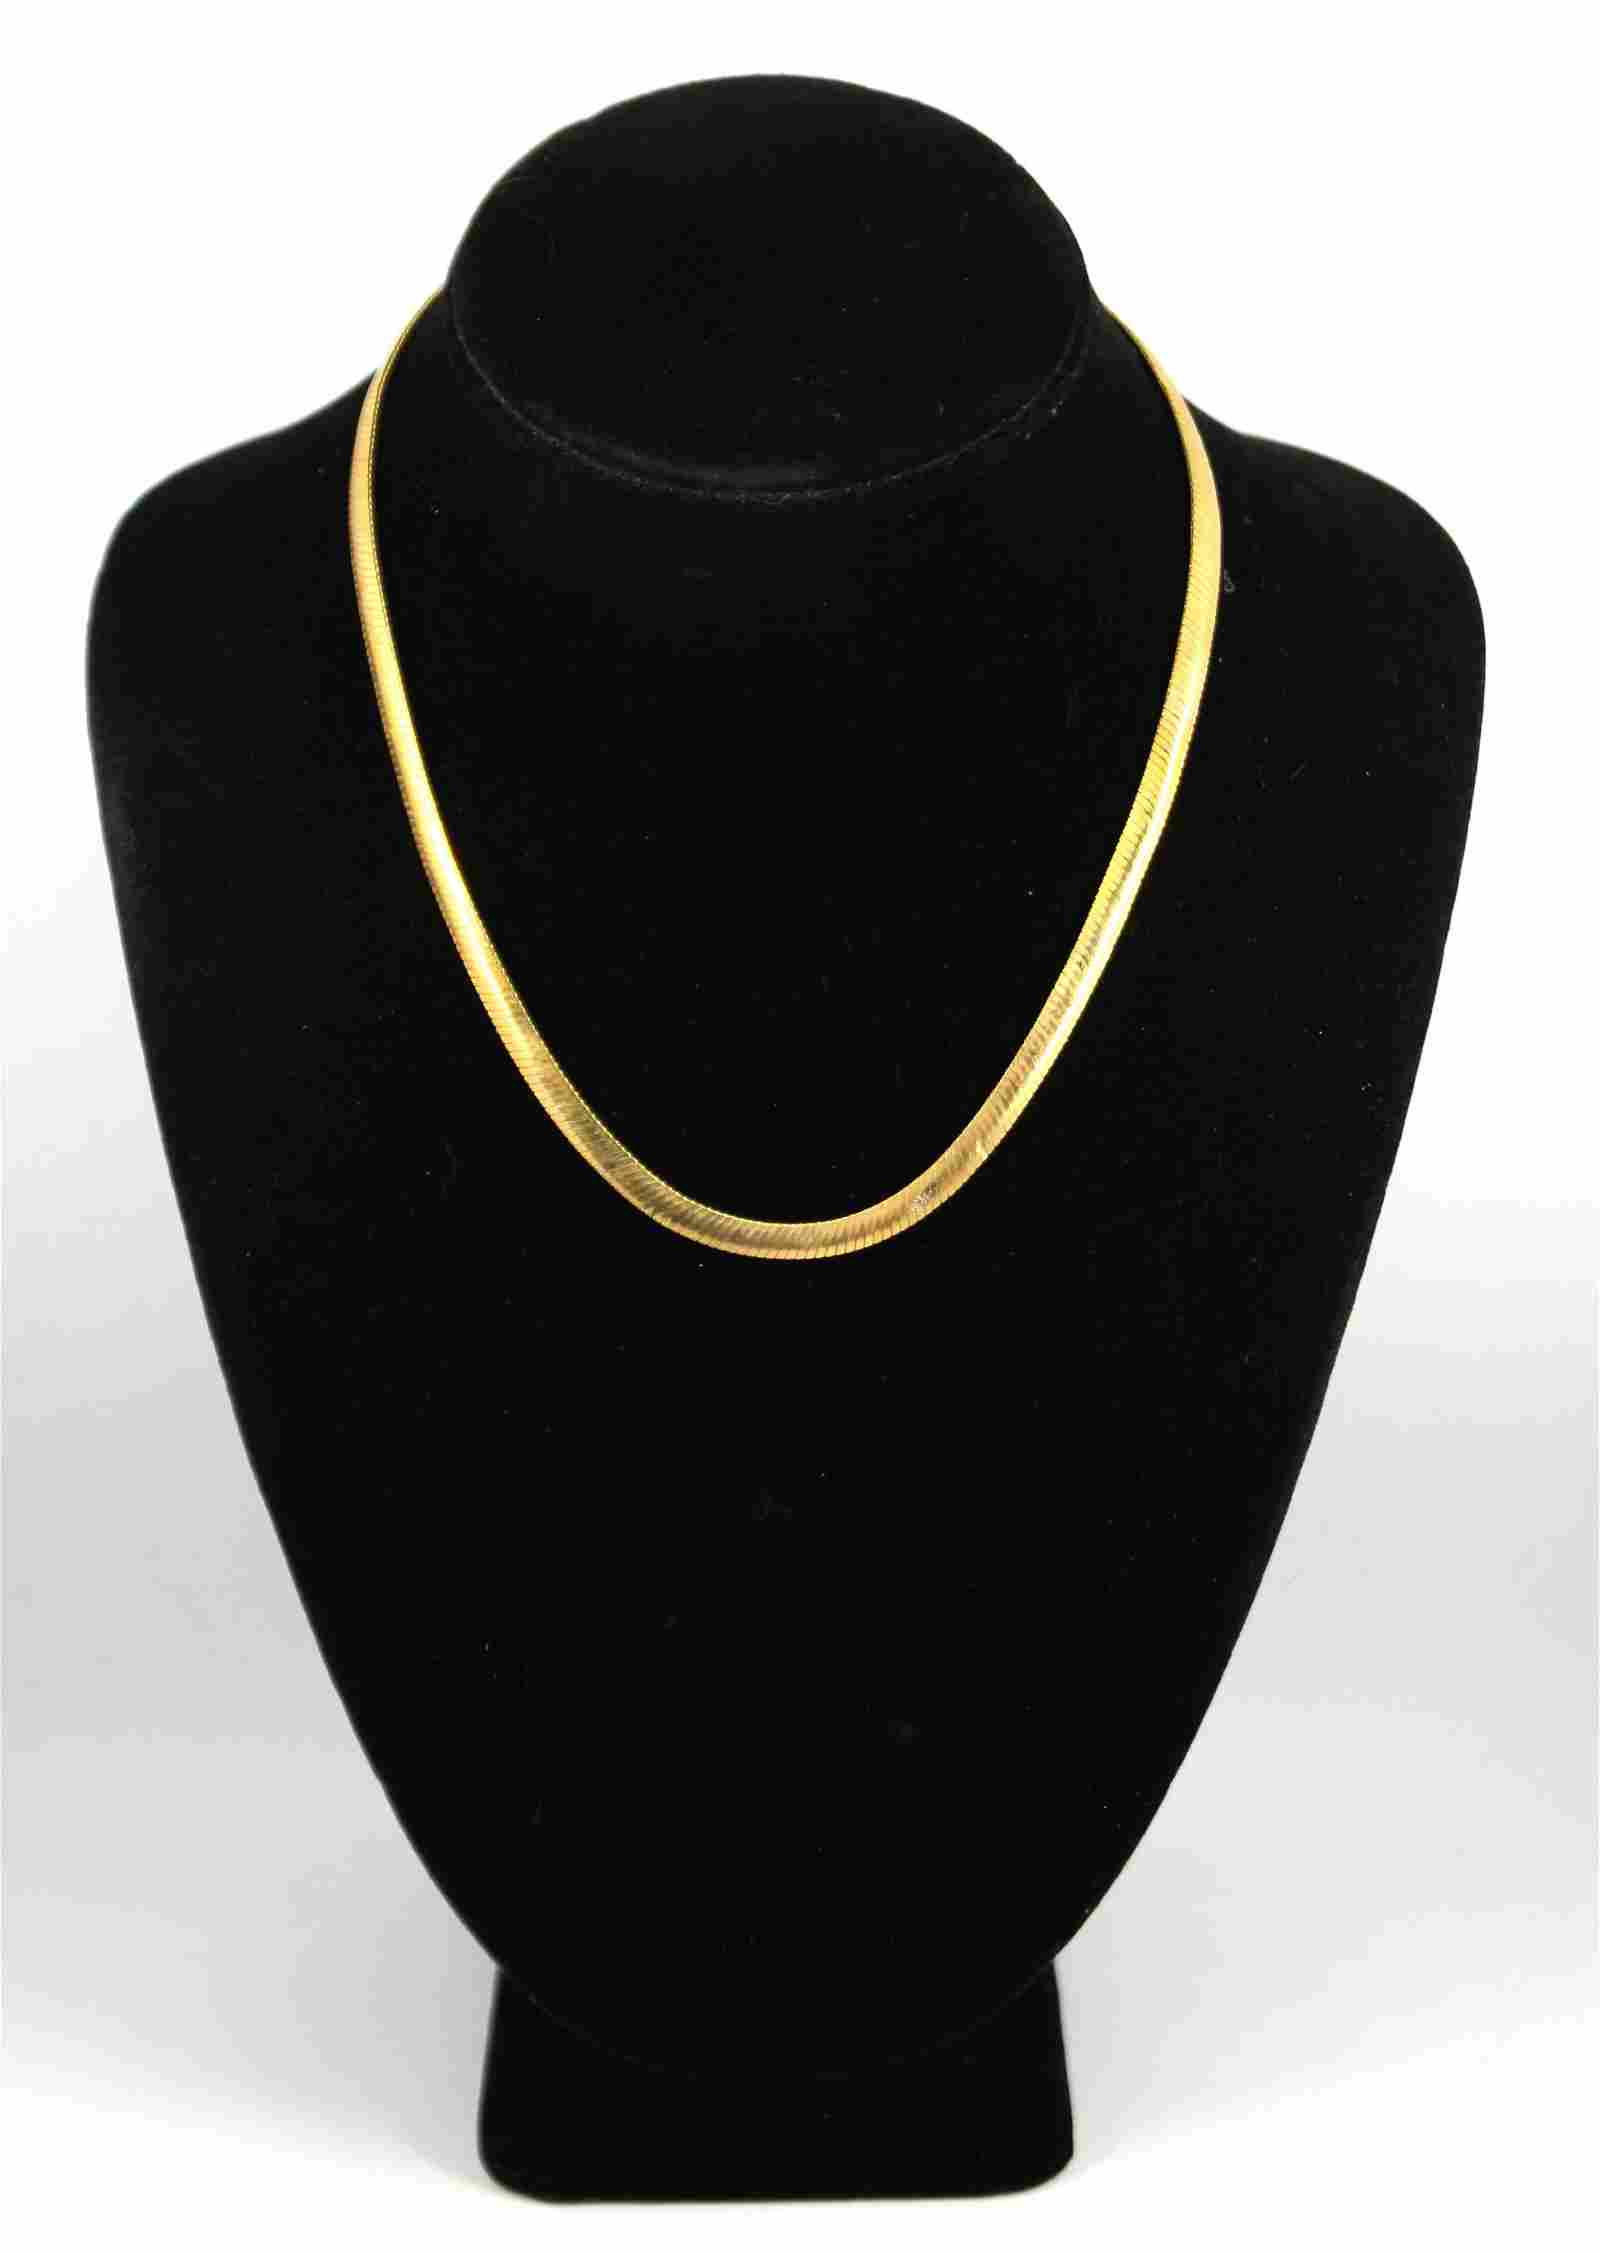 Italian 14K Yellow Gold Snake Link Necklace